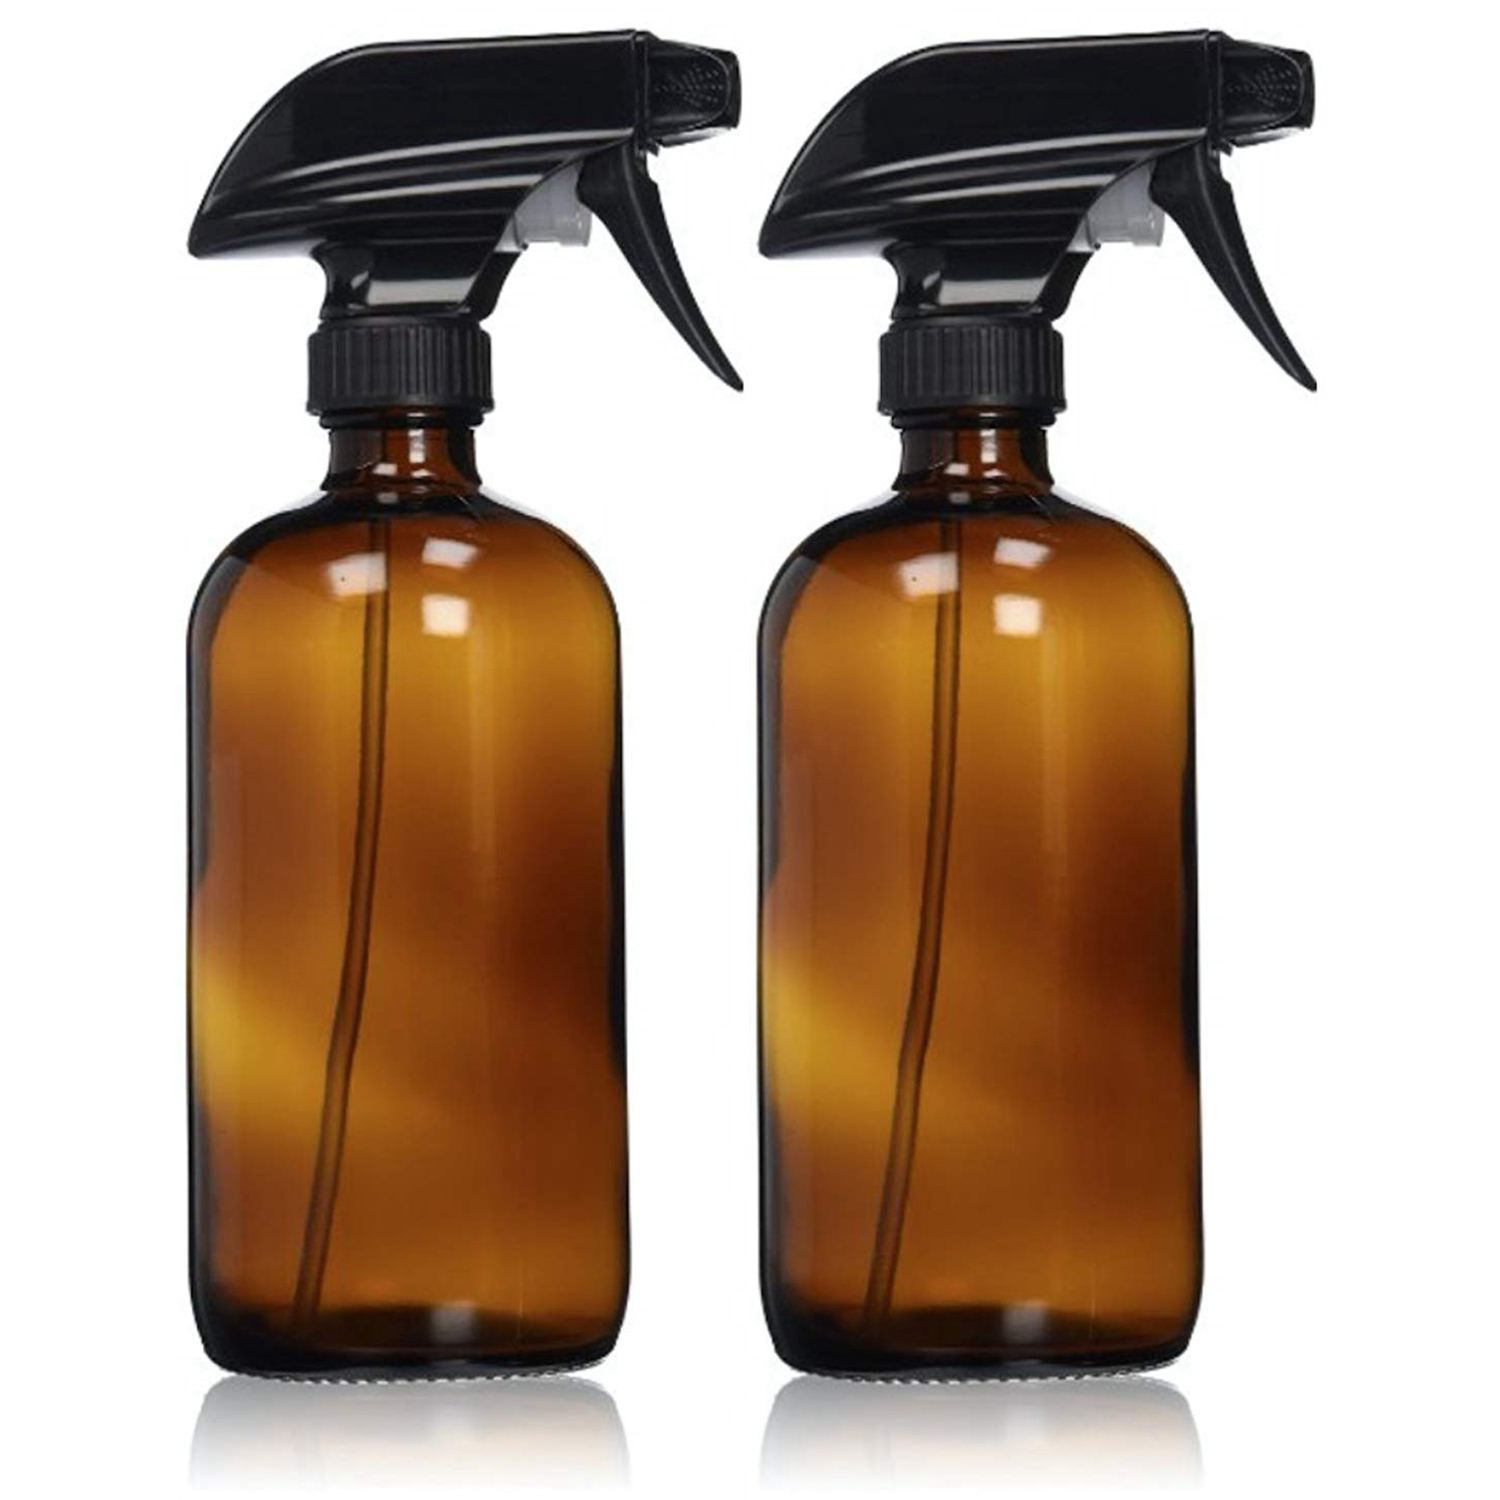 Empty Amber Glass Spray Bottles with Labels (2 Pack) - Refillable Container for Essential Oils Cleaning Products or Aromathe